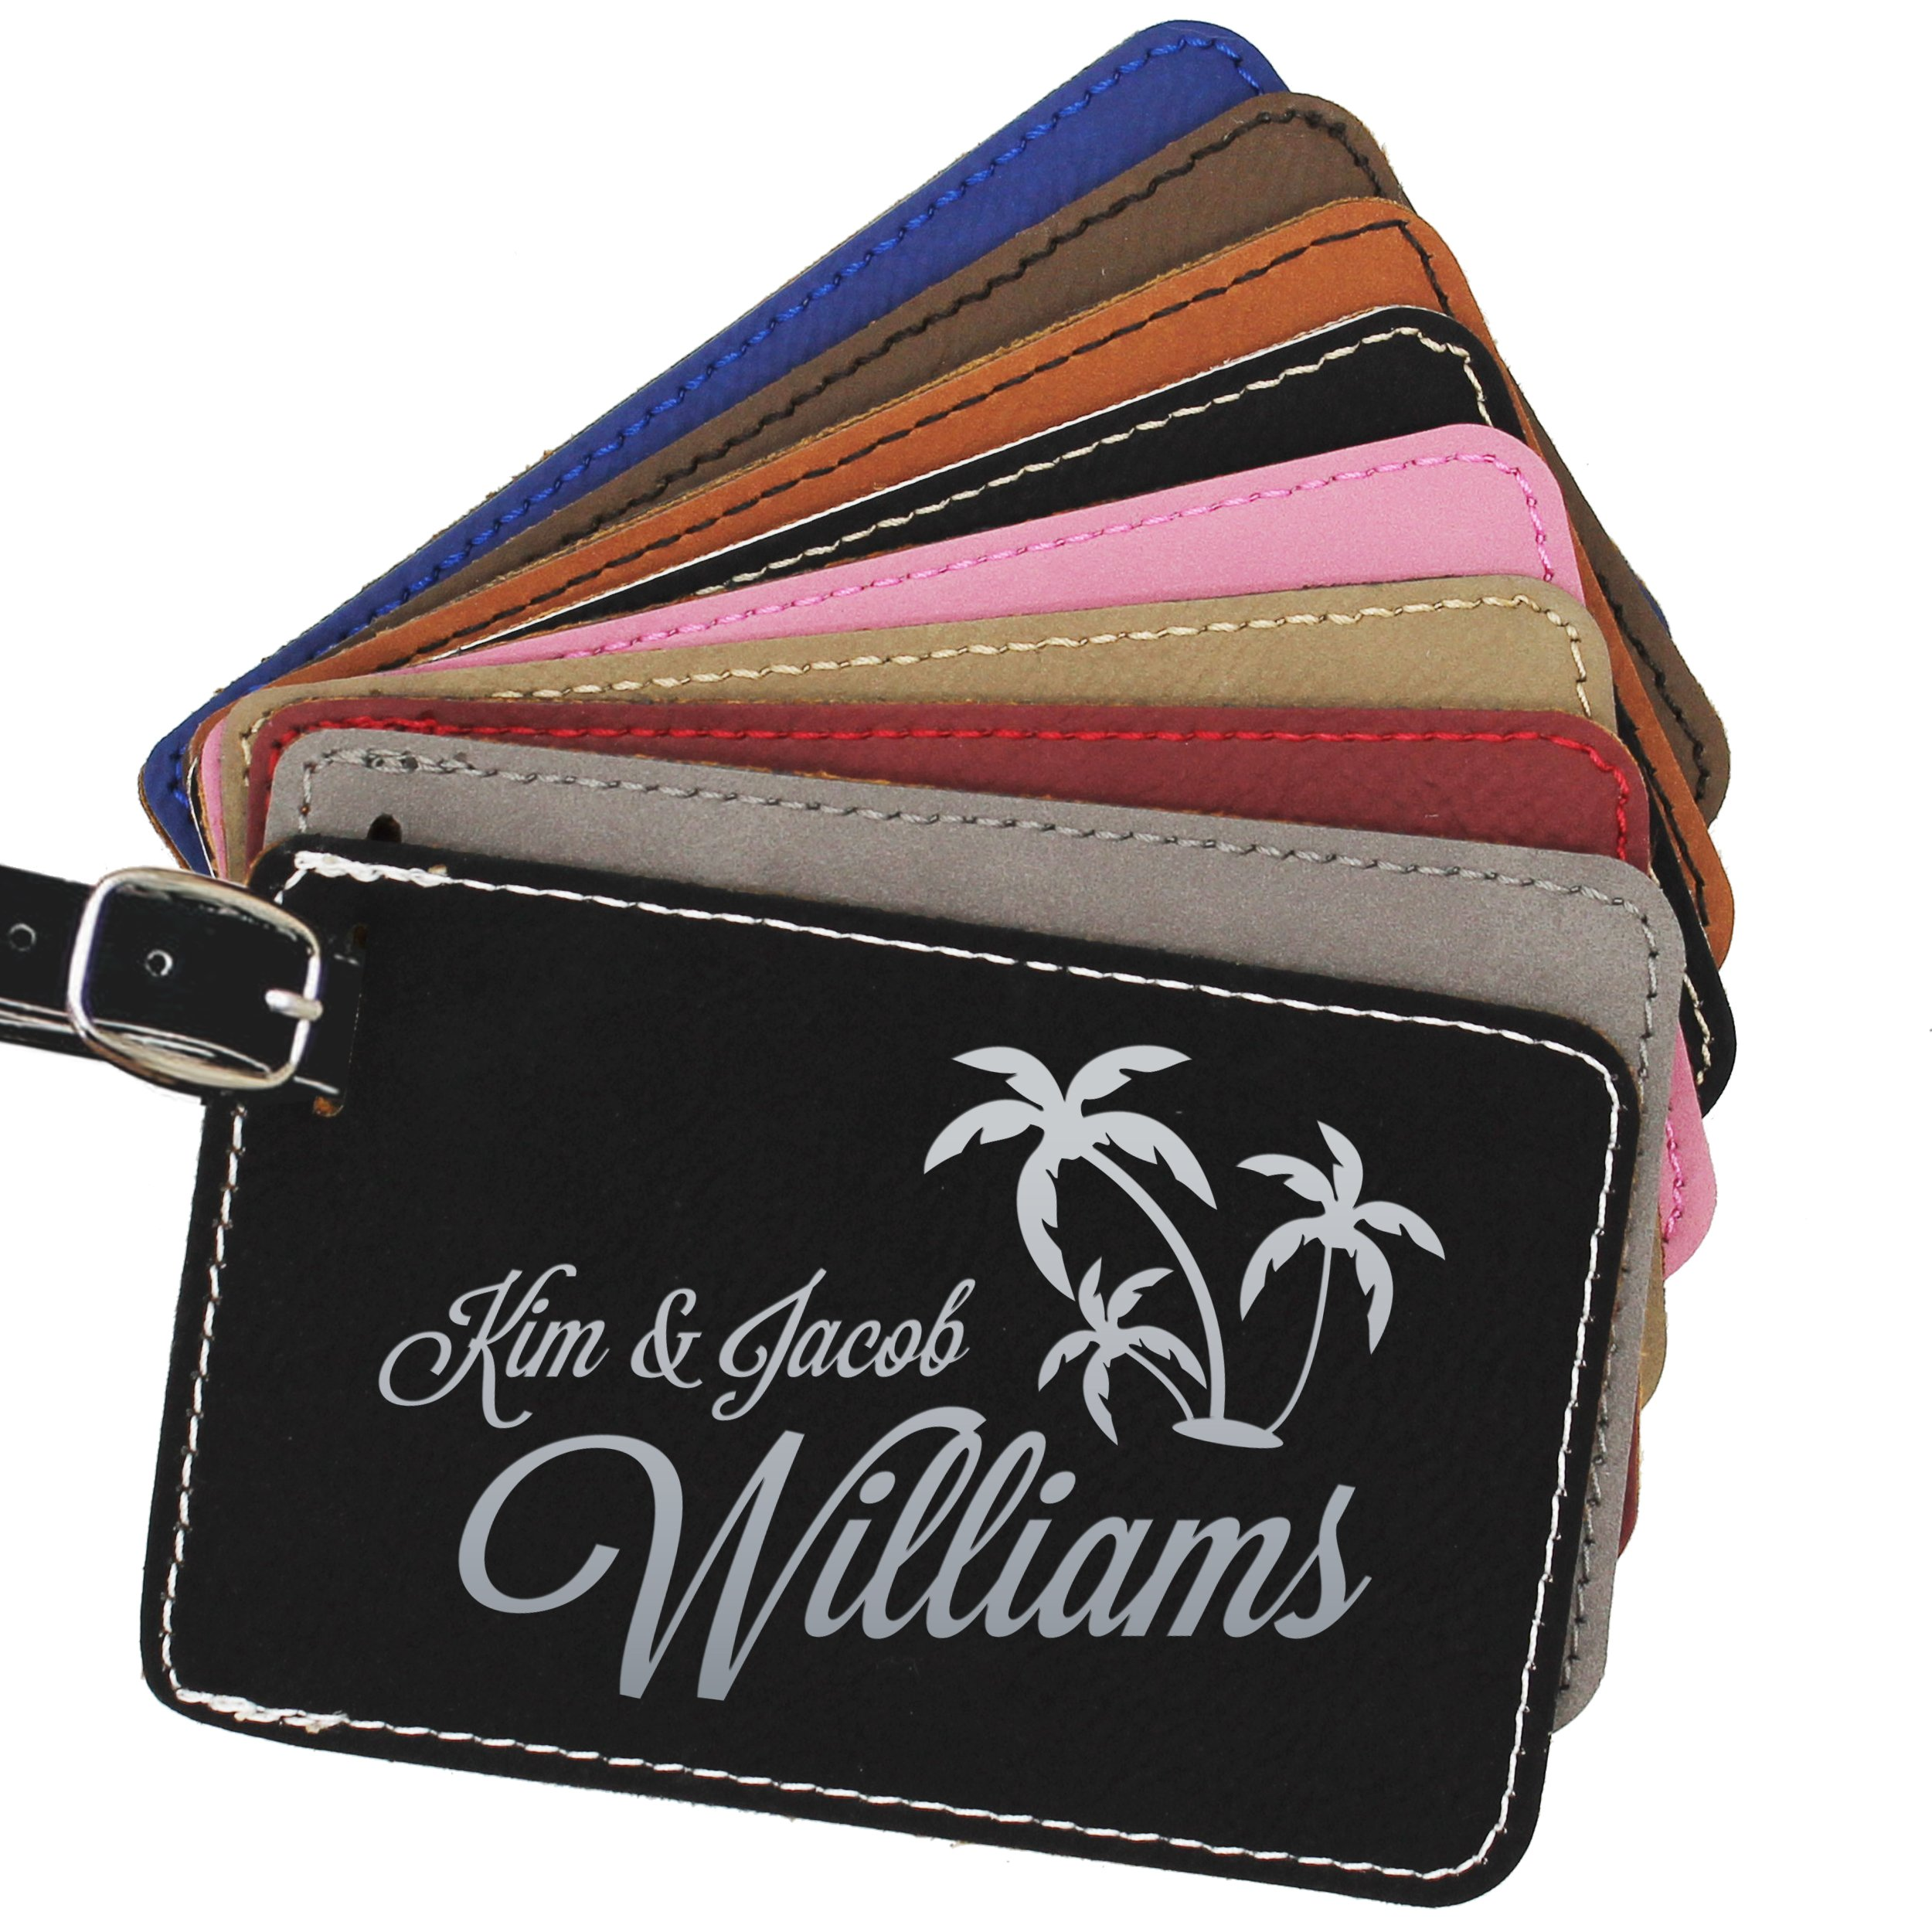 Custom Luggage Tags - Engraved Personalized Monogrammed Business and Traveler Gift